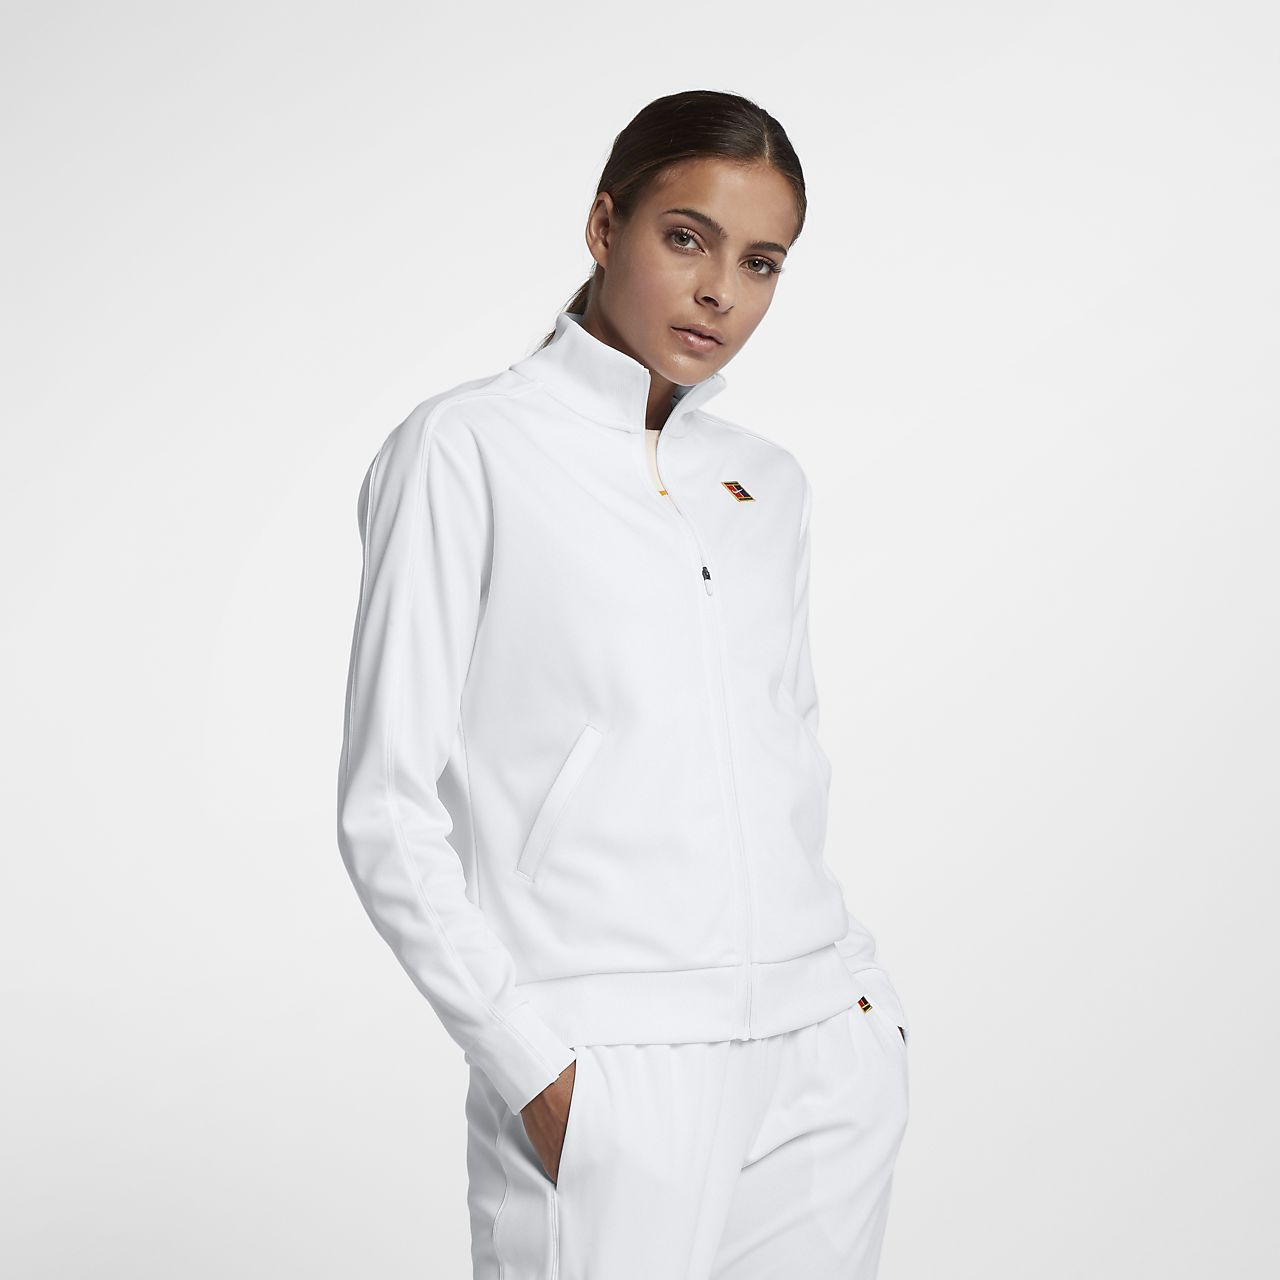 NikeCourt Women's Tennis Jacket